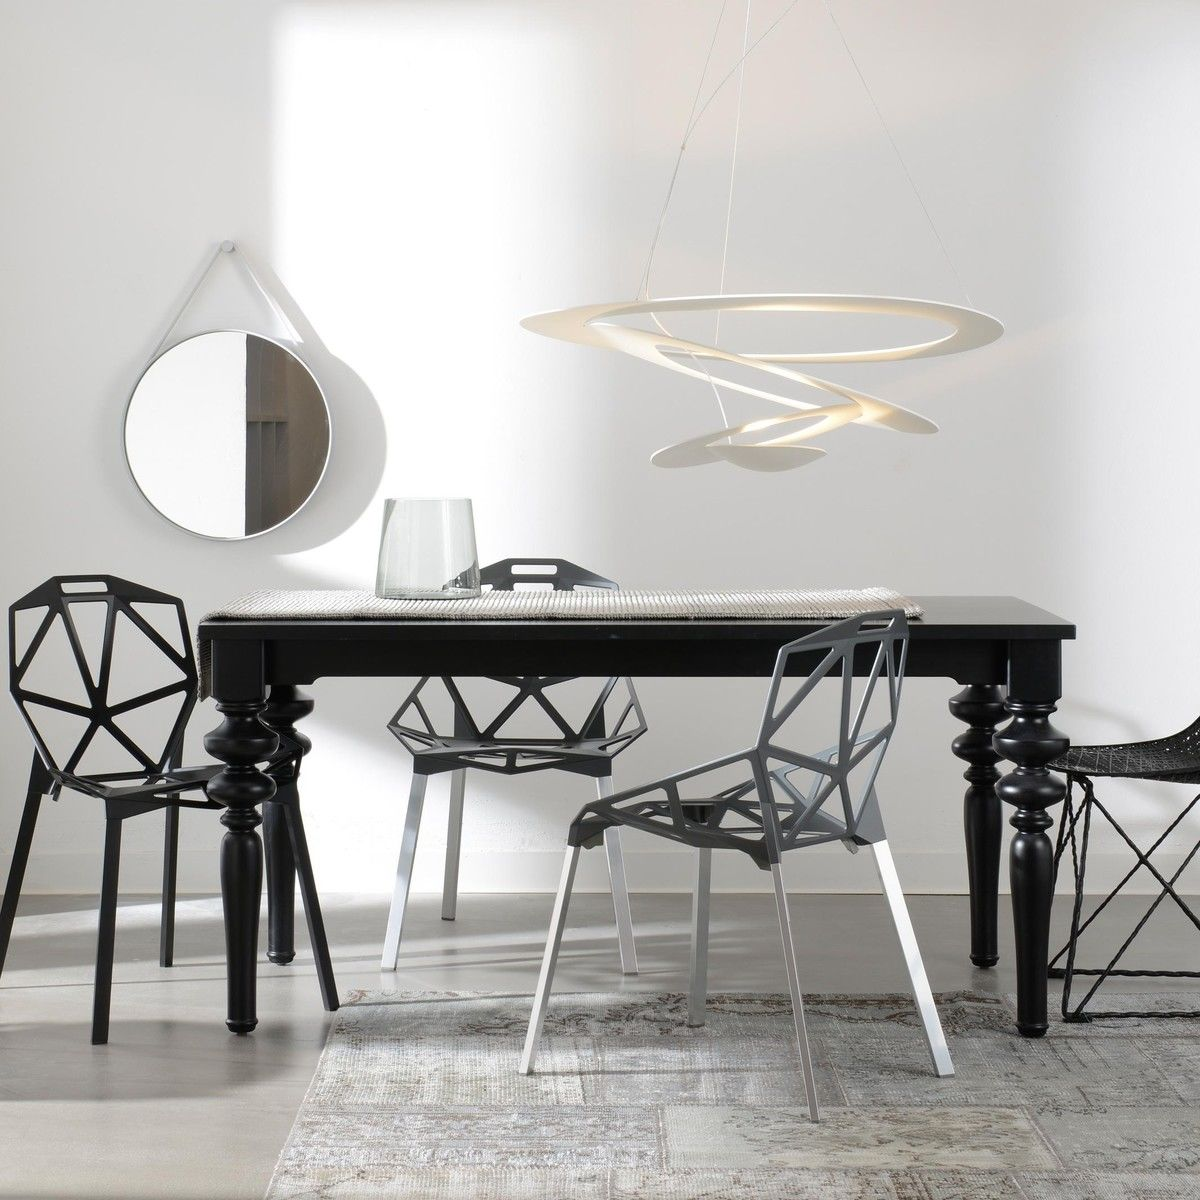 pirce suspension artemide. Black Bedroom Furniture Sets. Home Design Ideas